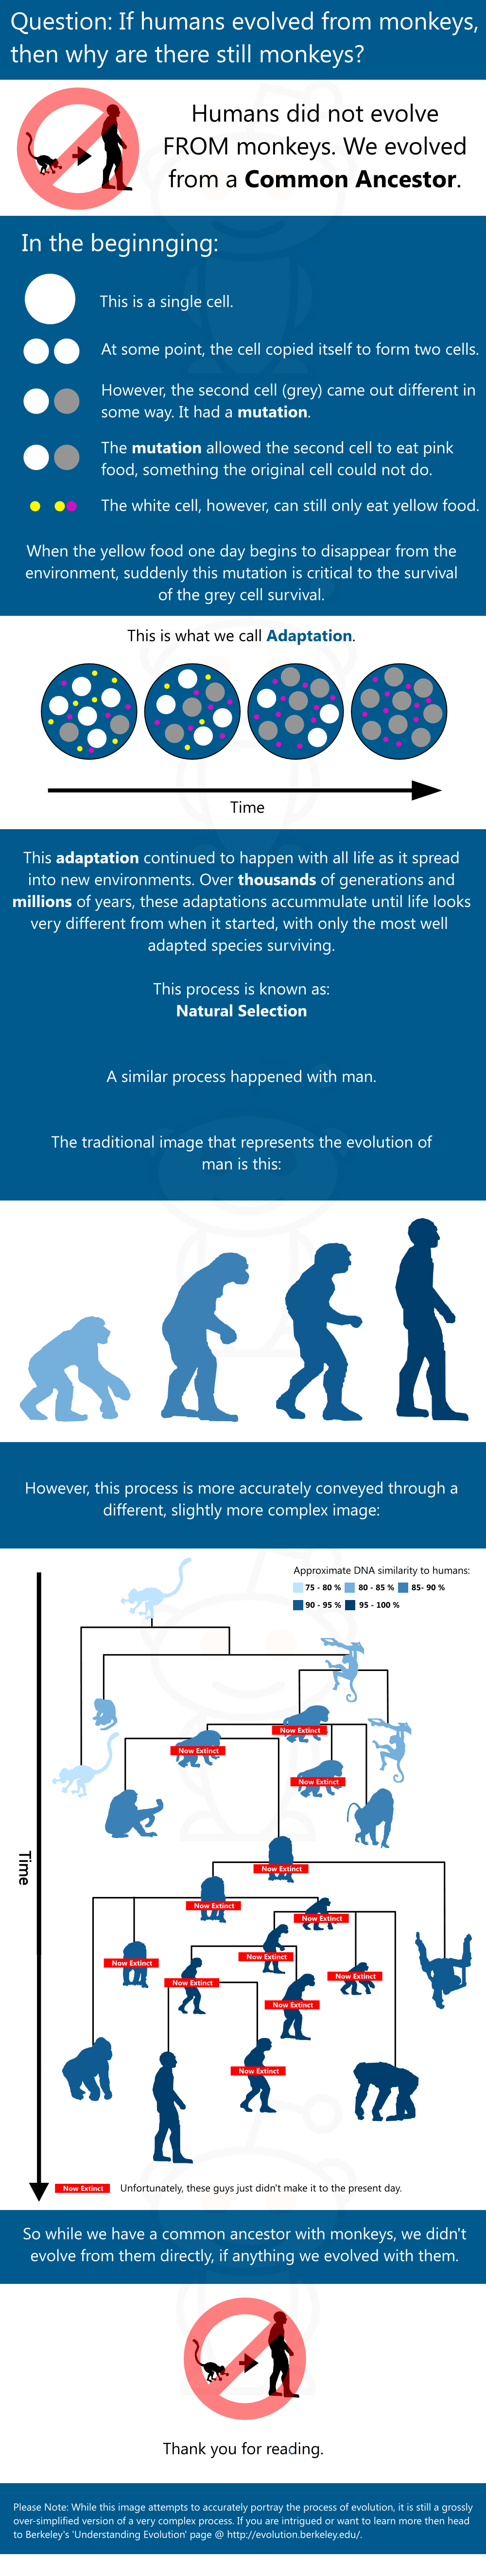 What idea did hardy and weinberg disprove - Question If Humans Evolved From Monkeys Then Why Are There Still Monkey Humans Did Not Evolve From Monkeys We Evolved From A Common Ancestor